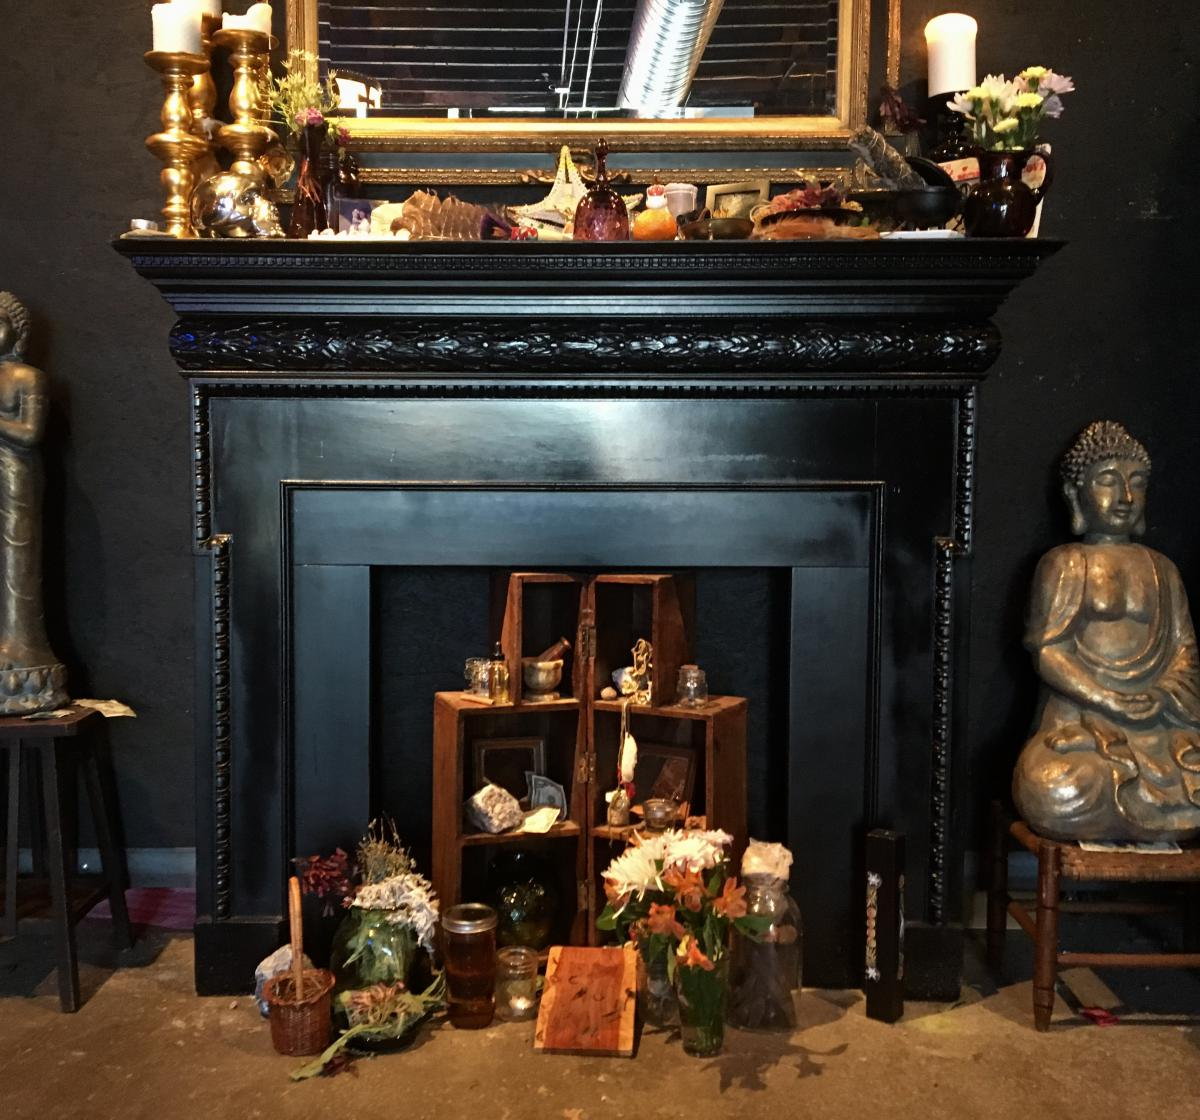 Haley Murphy's altar, where she begins her morning rituals. She starts each day starts by burning sage and sometimes ringing the purple bell on her mantel.   CREDIT OLLIVIA REINGOLD